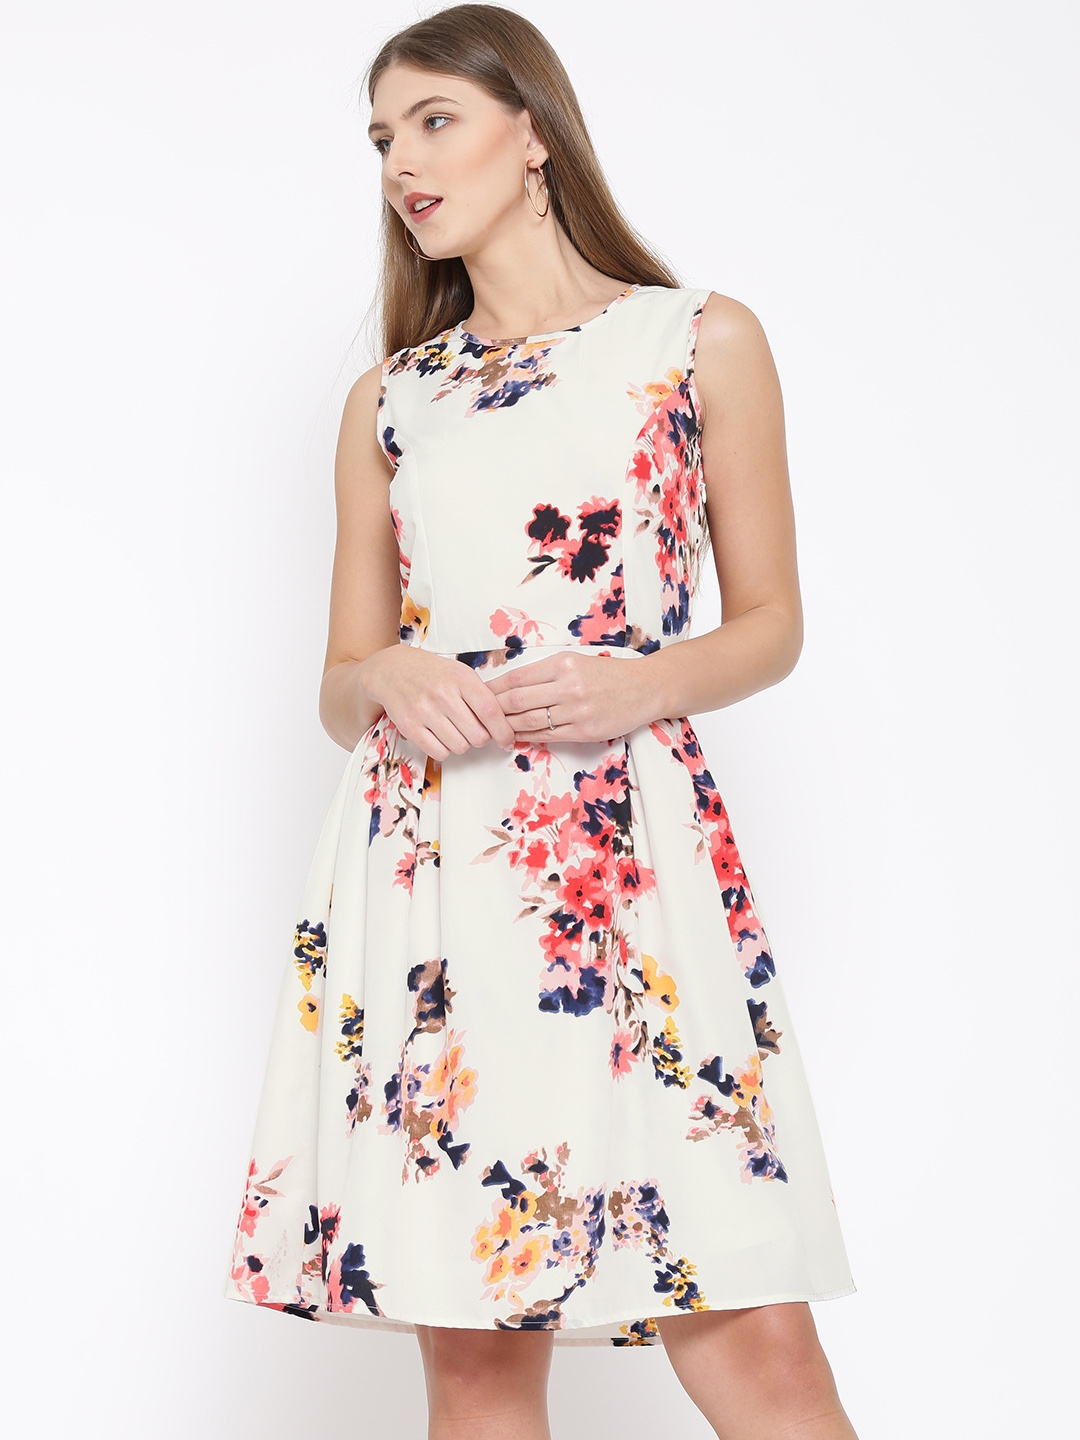 64638ee4c Buy RARE Women Off White Floral Print Fit & Flare Dress - Dresses ...